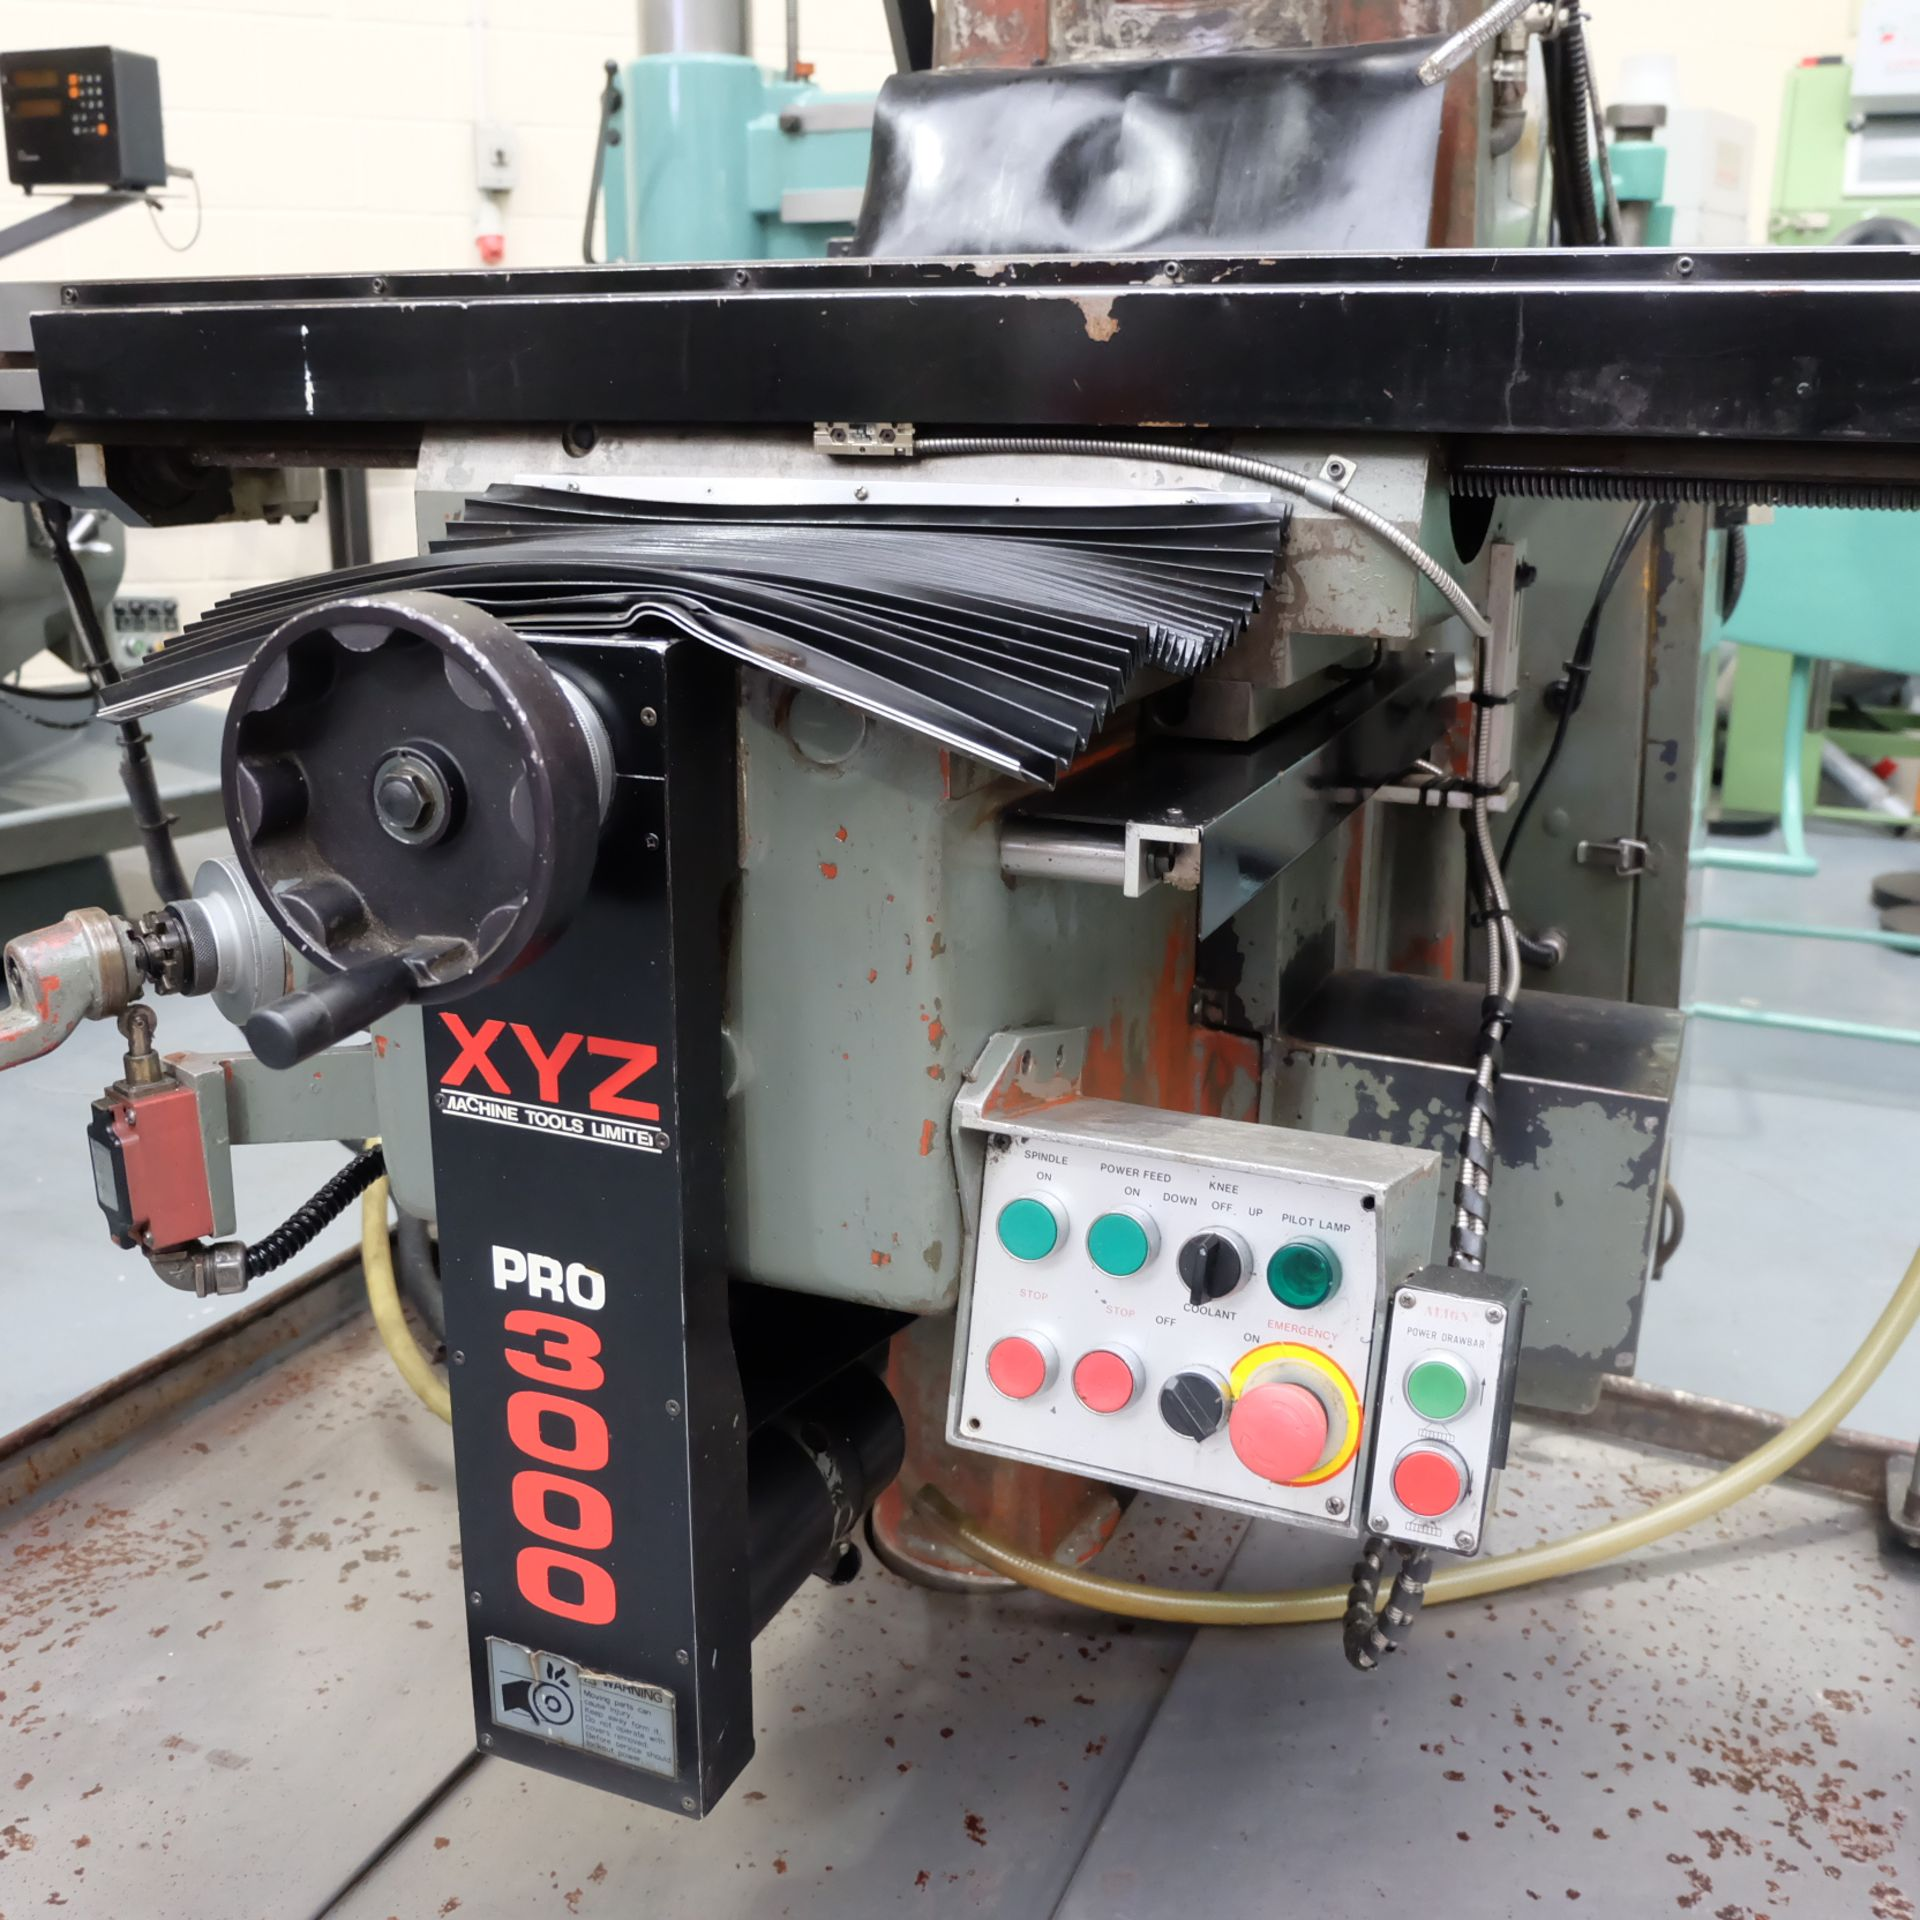 Lot 19 - XYZ Pro3000: Turret Mill. With Prototrak MX2 Two Axis Programmable Control.